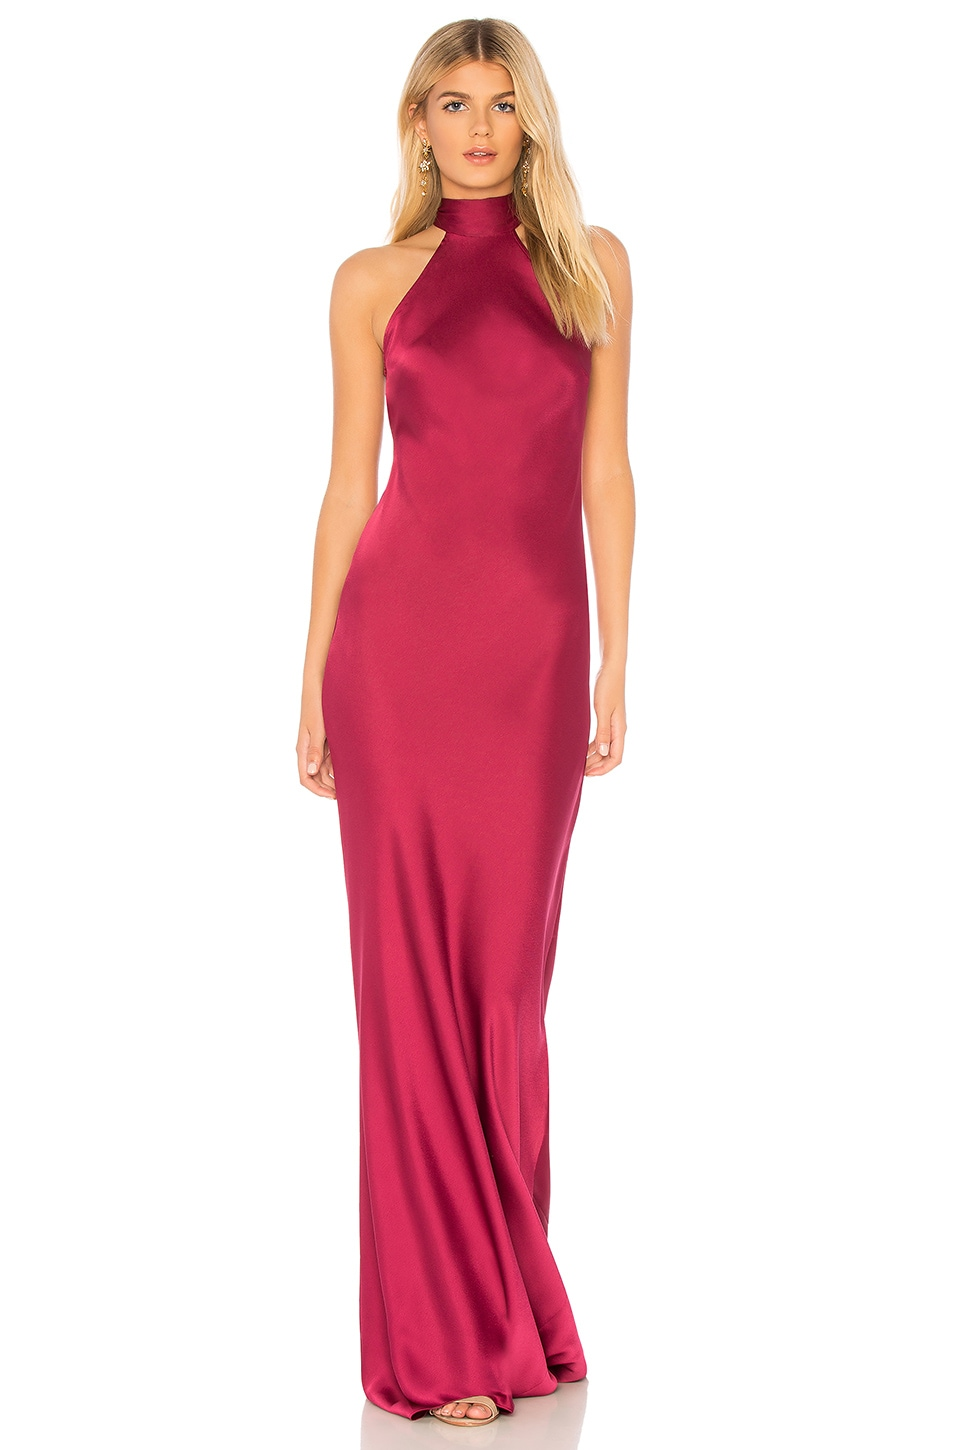 Jay Godfrey Brisco Gown in Boysenberry